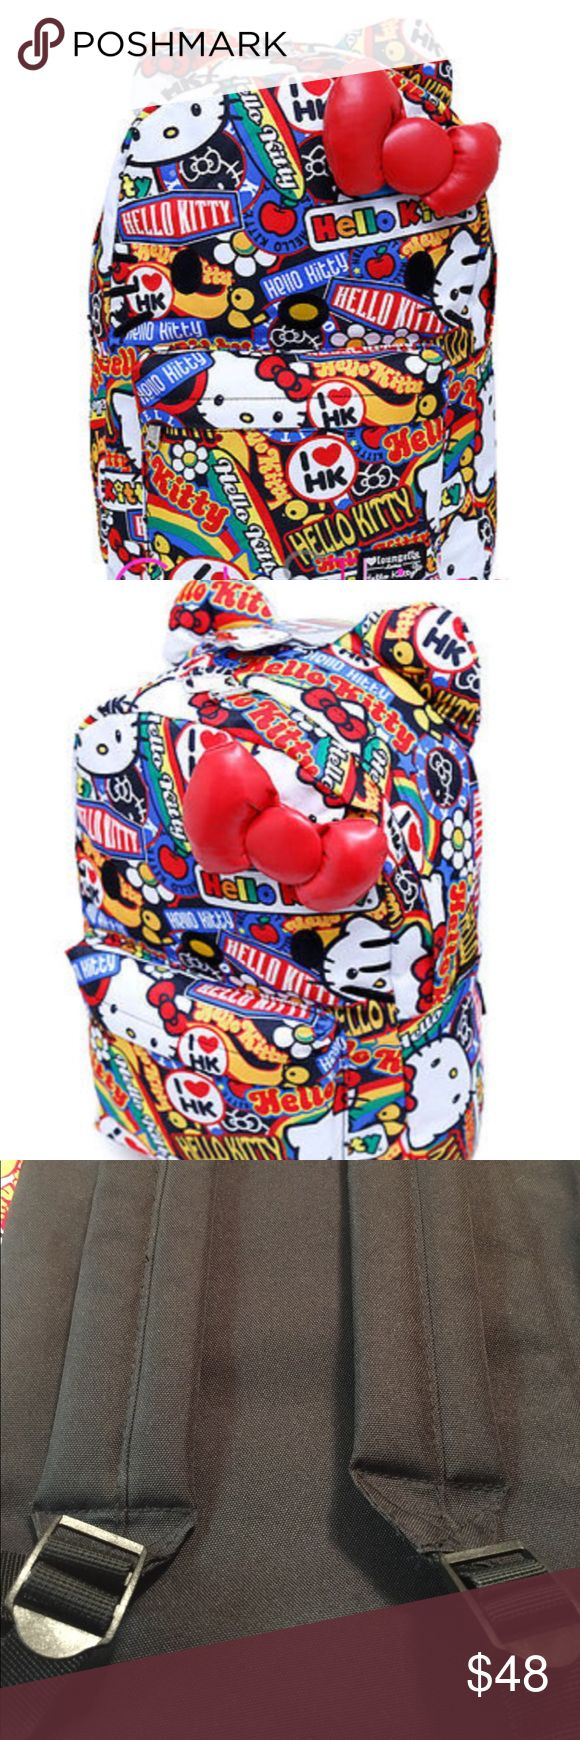 NWOT Hello Kitty Loungefly Button Backpack NWOT Hello Kitty Loungefly Button Backpack. Perfect for that Hello Kitty Lover in your life or collector. This comes from my private collection glass kept never used. Hello Kitty Bags Backpacks